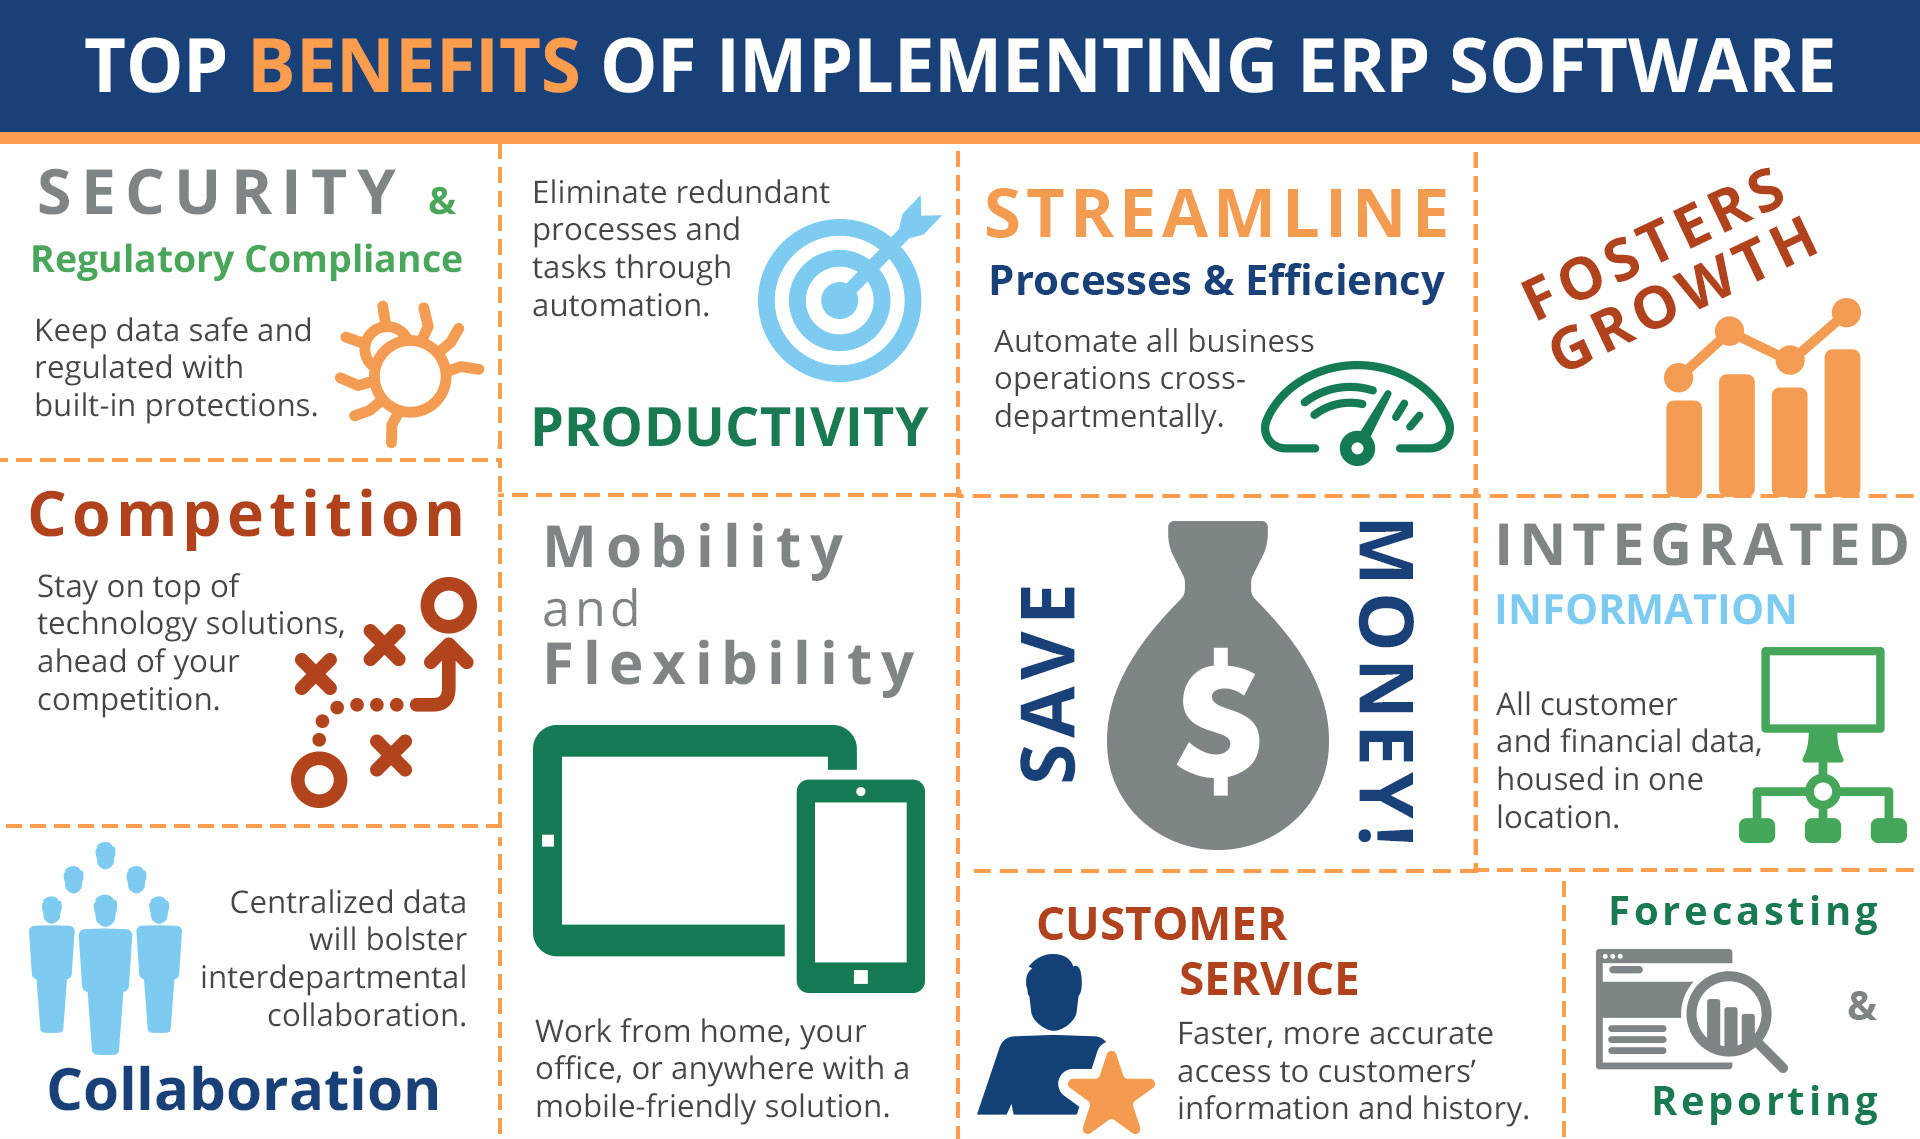 5 little known benefits of ERP Software